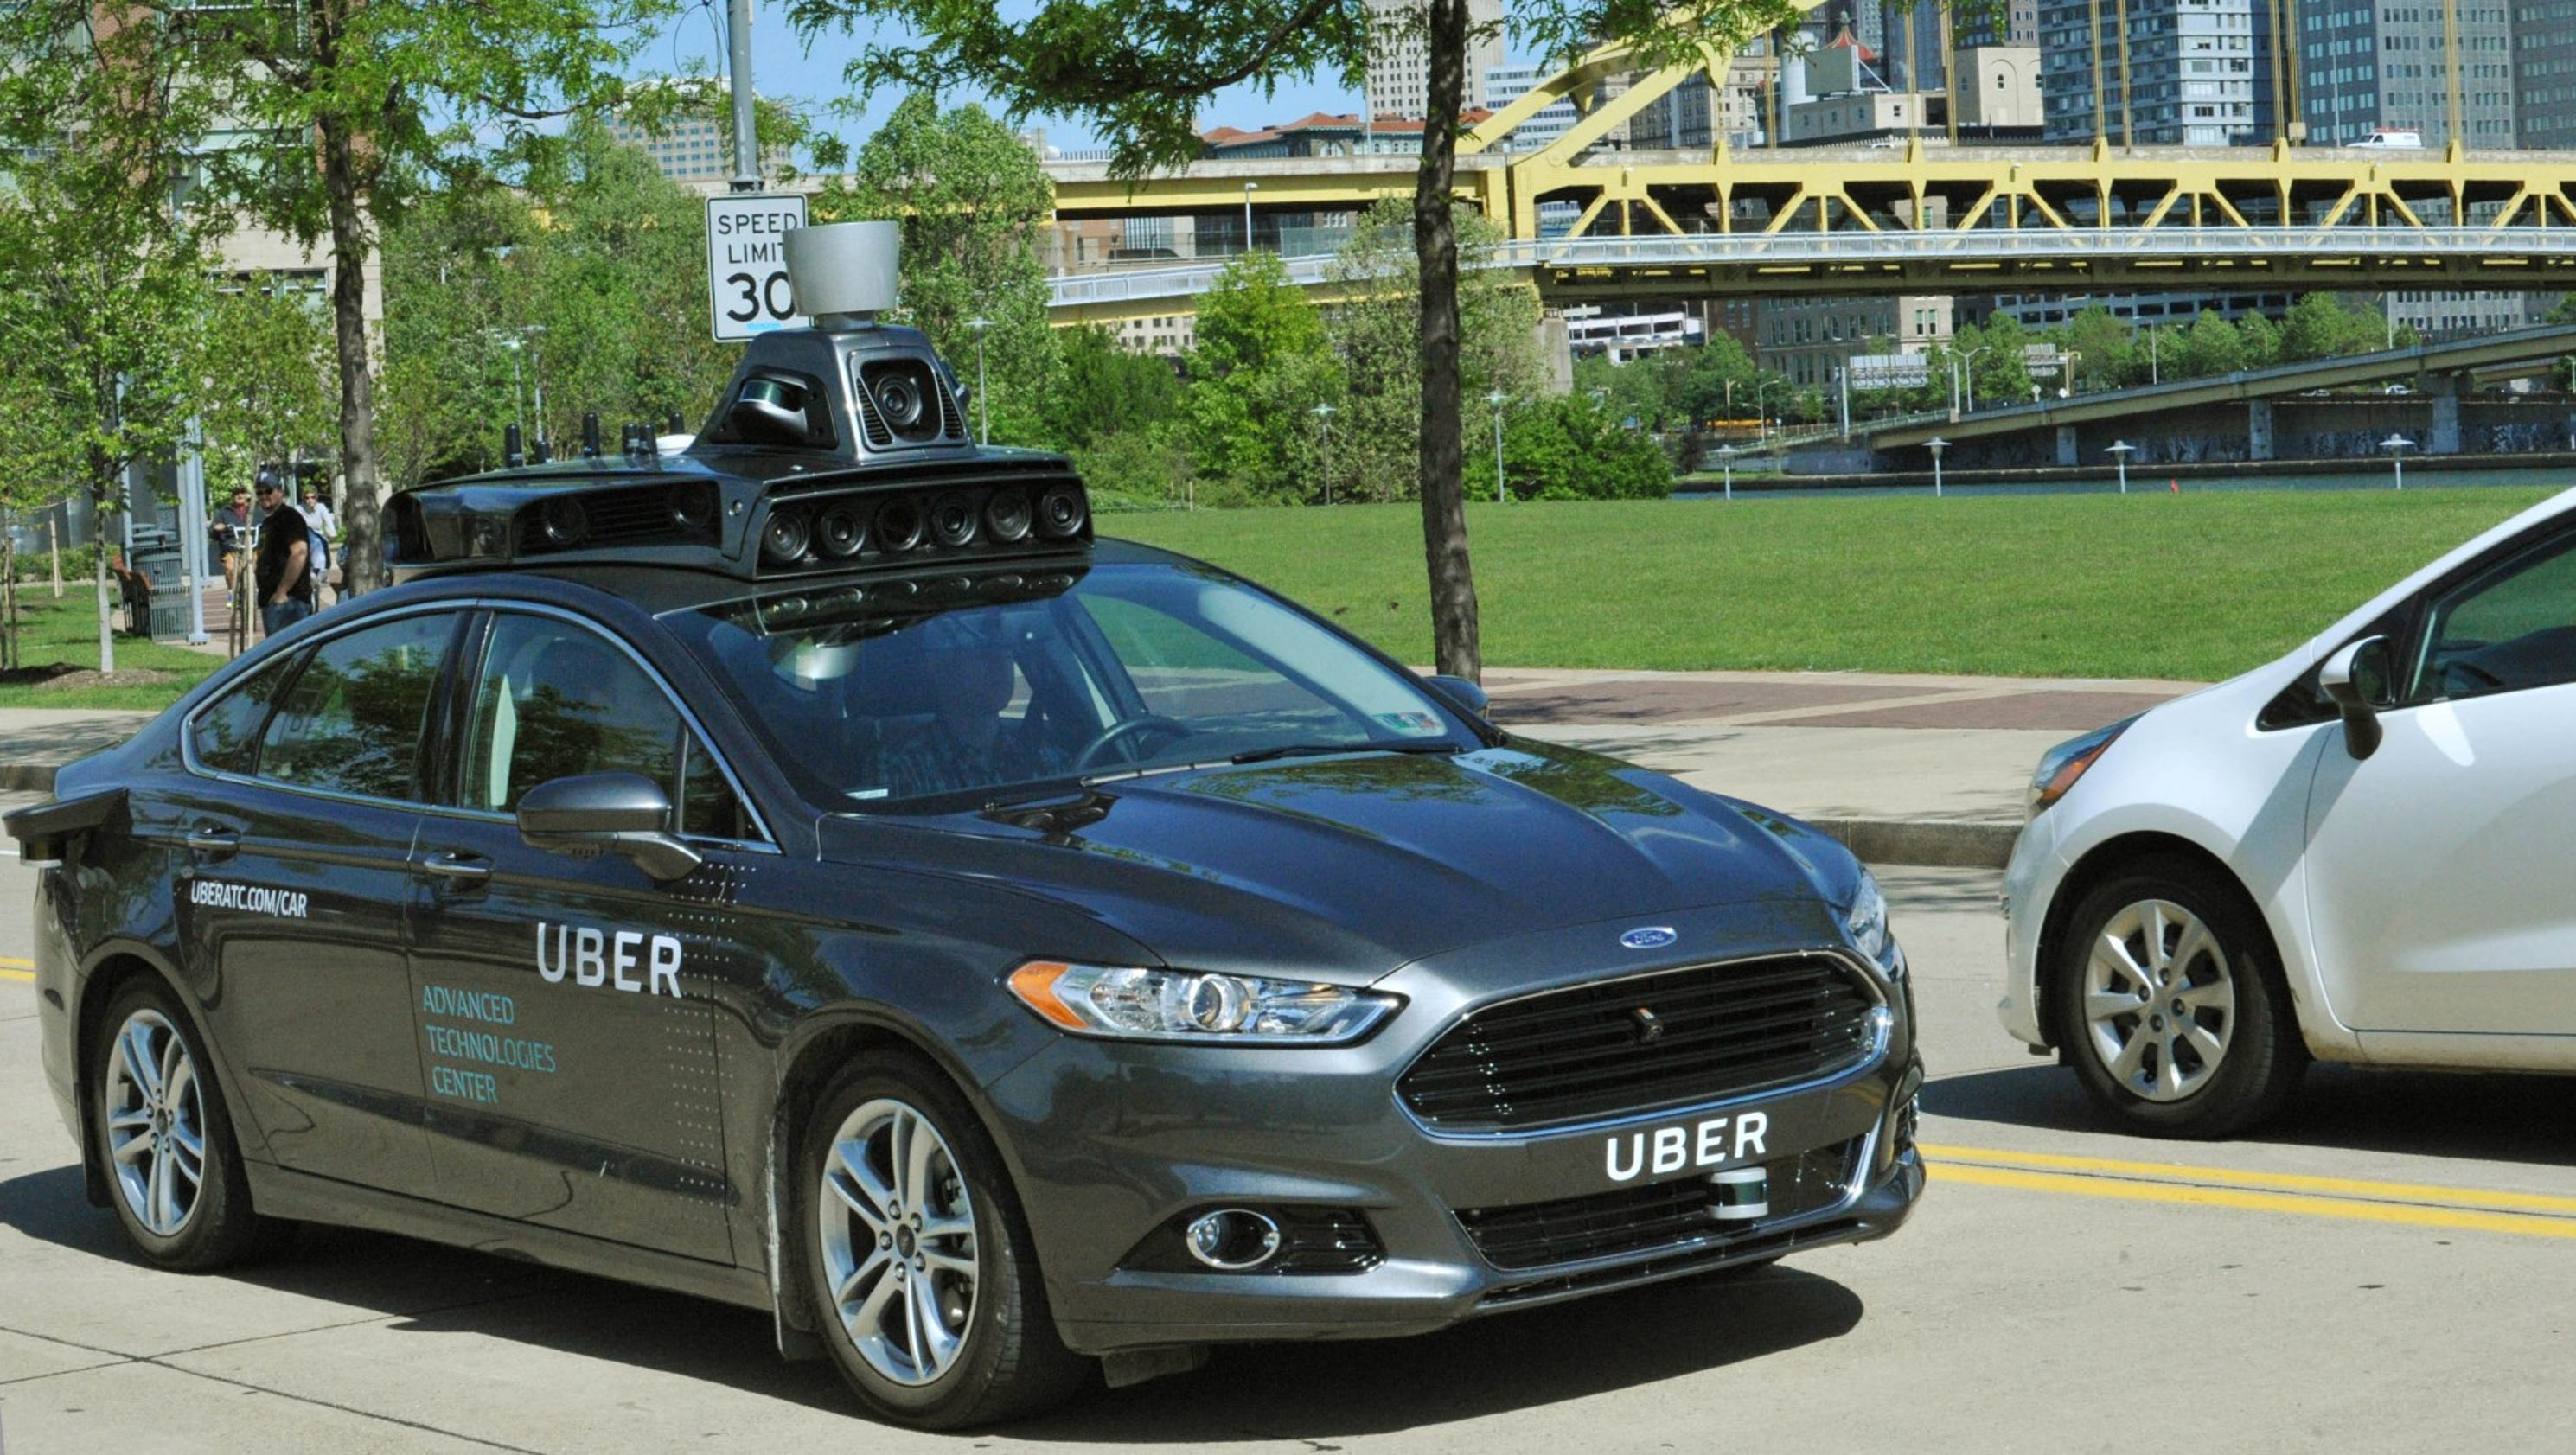 Uber tests self driving cars in Pittsburgh